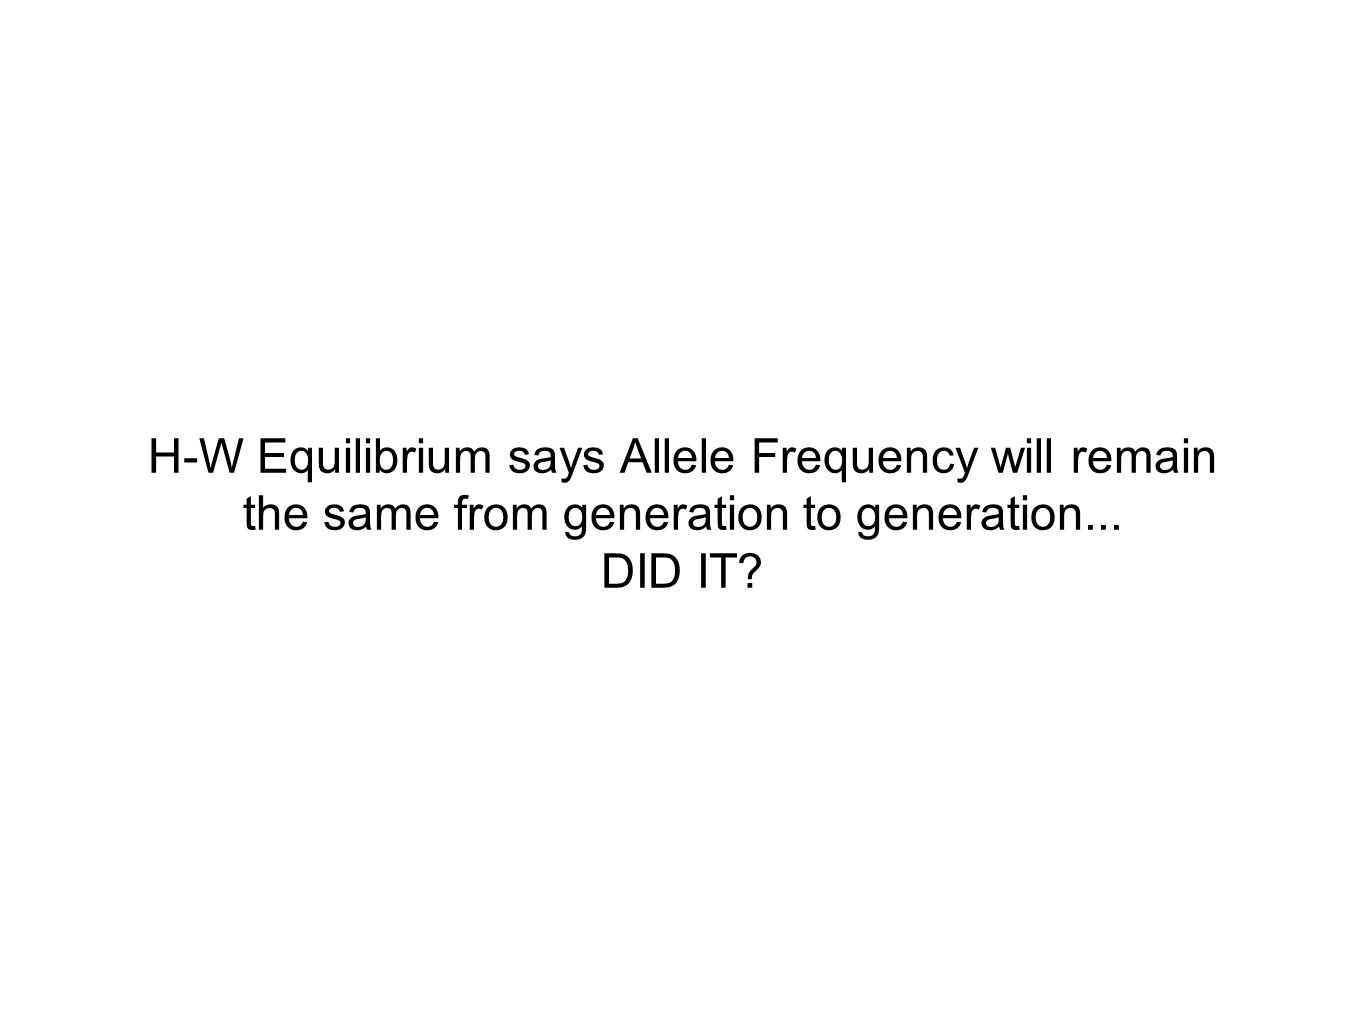 H-W Equilibrium says Allele Frequency will remain the same from generation to generation... DID IT